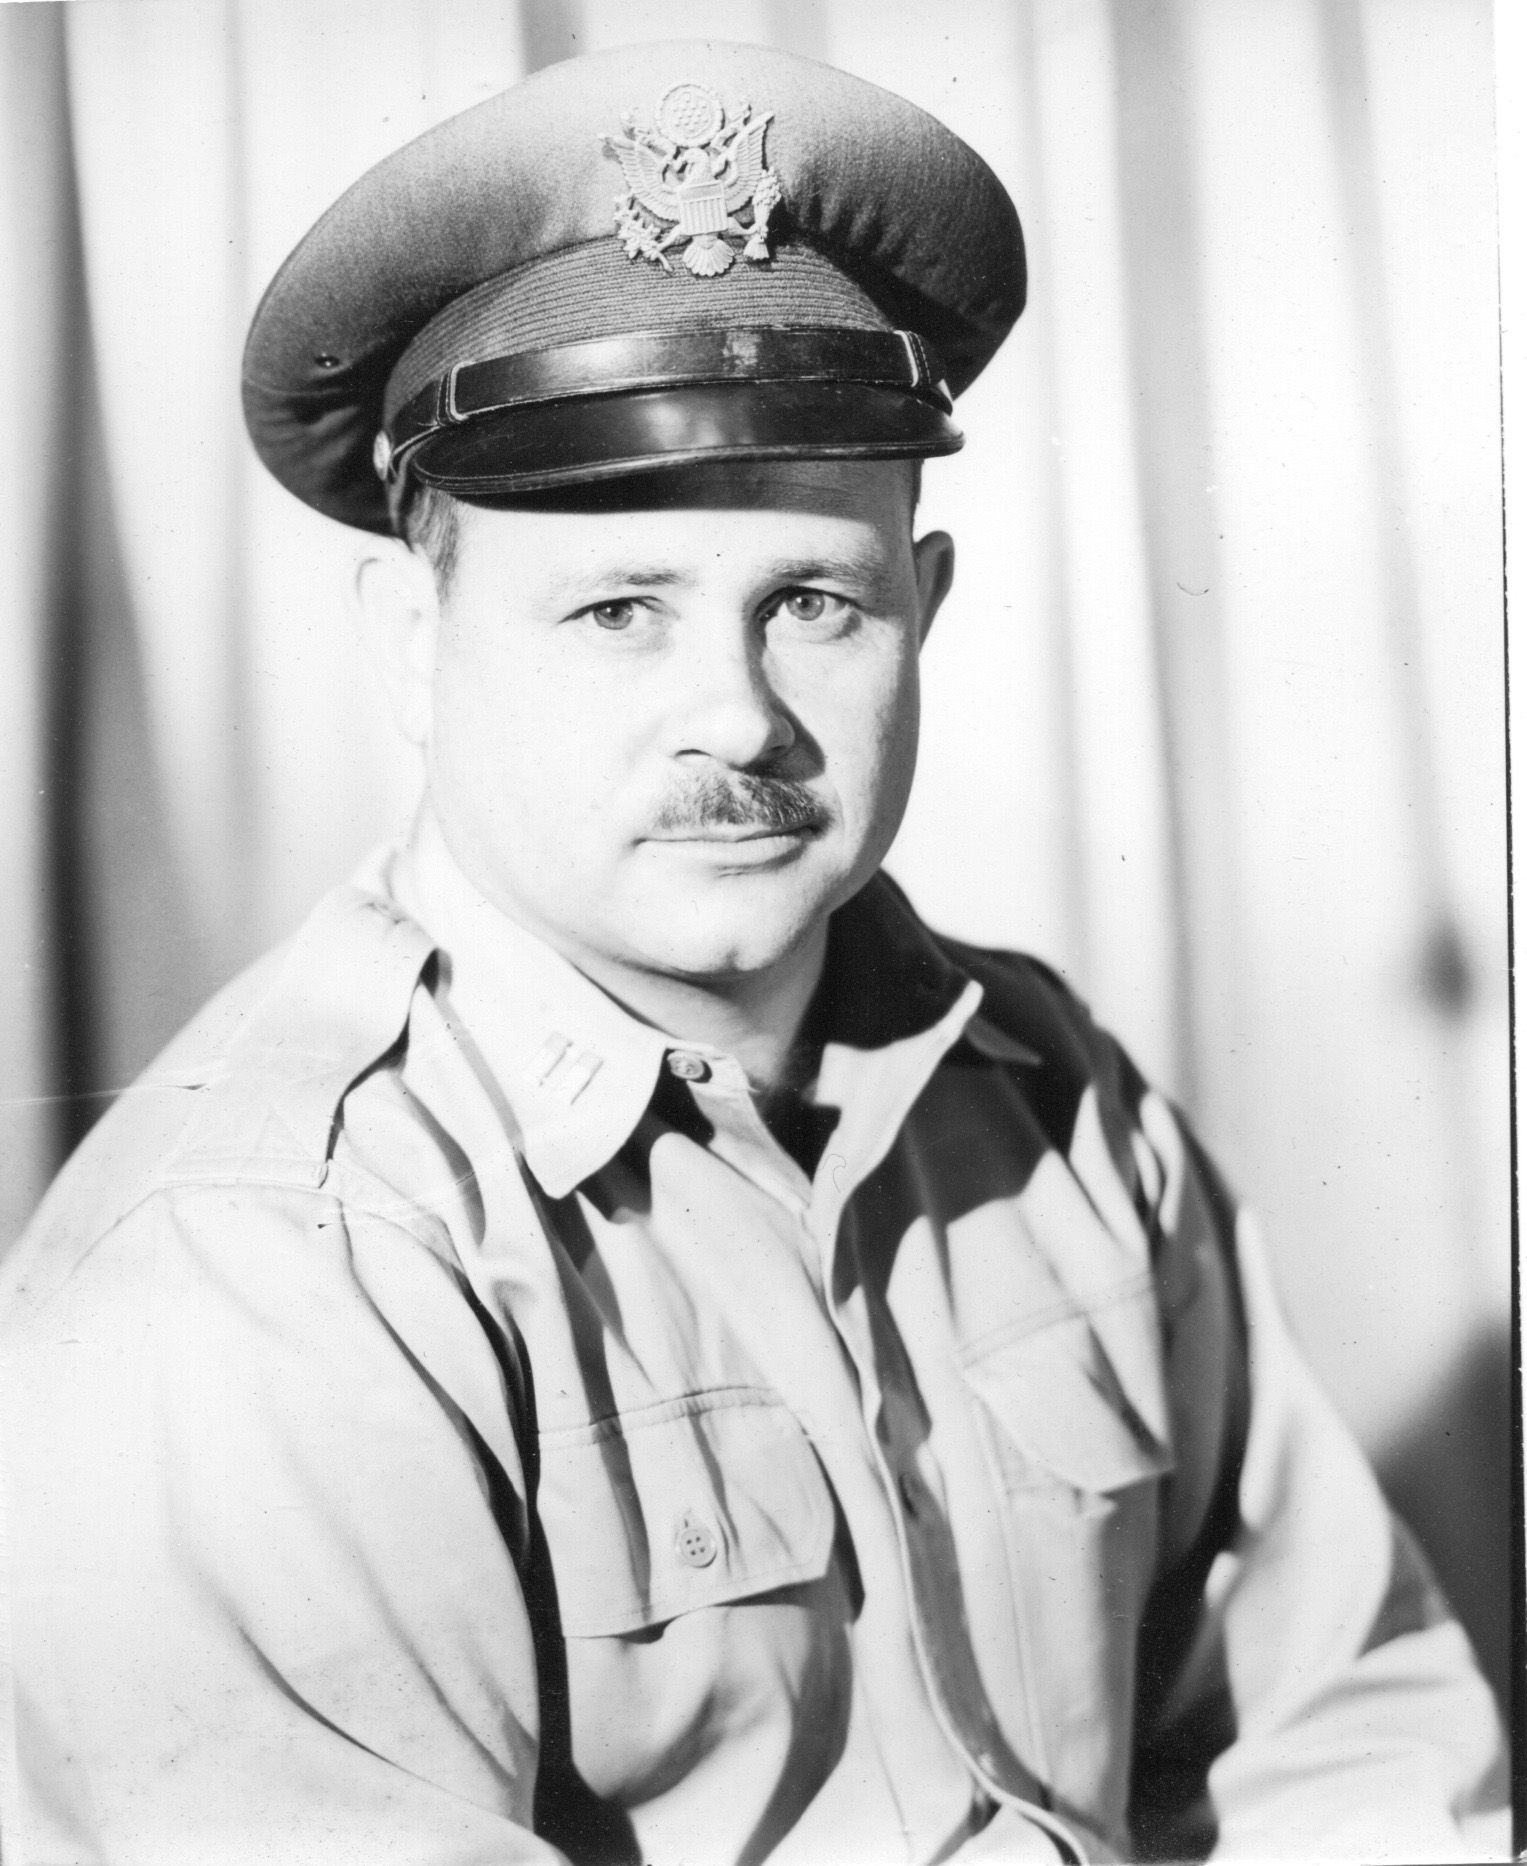 Papa in his Air Force captain's uniform, early 1950s (With